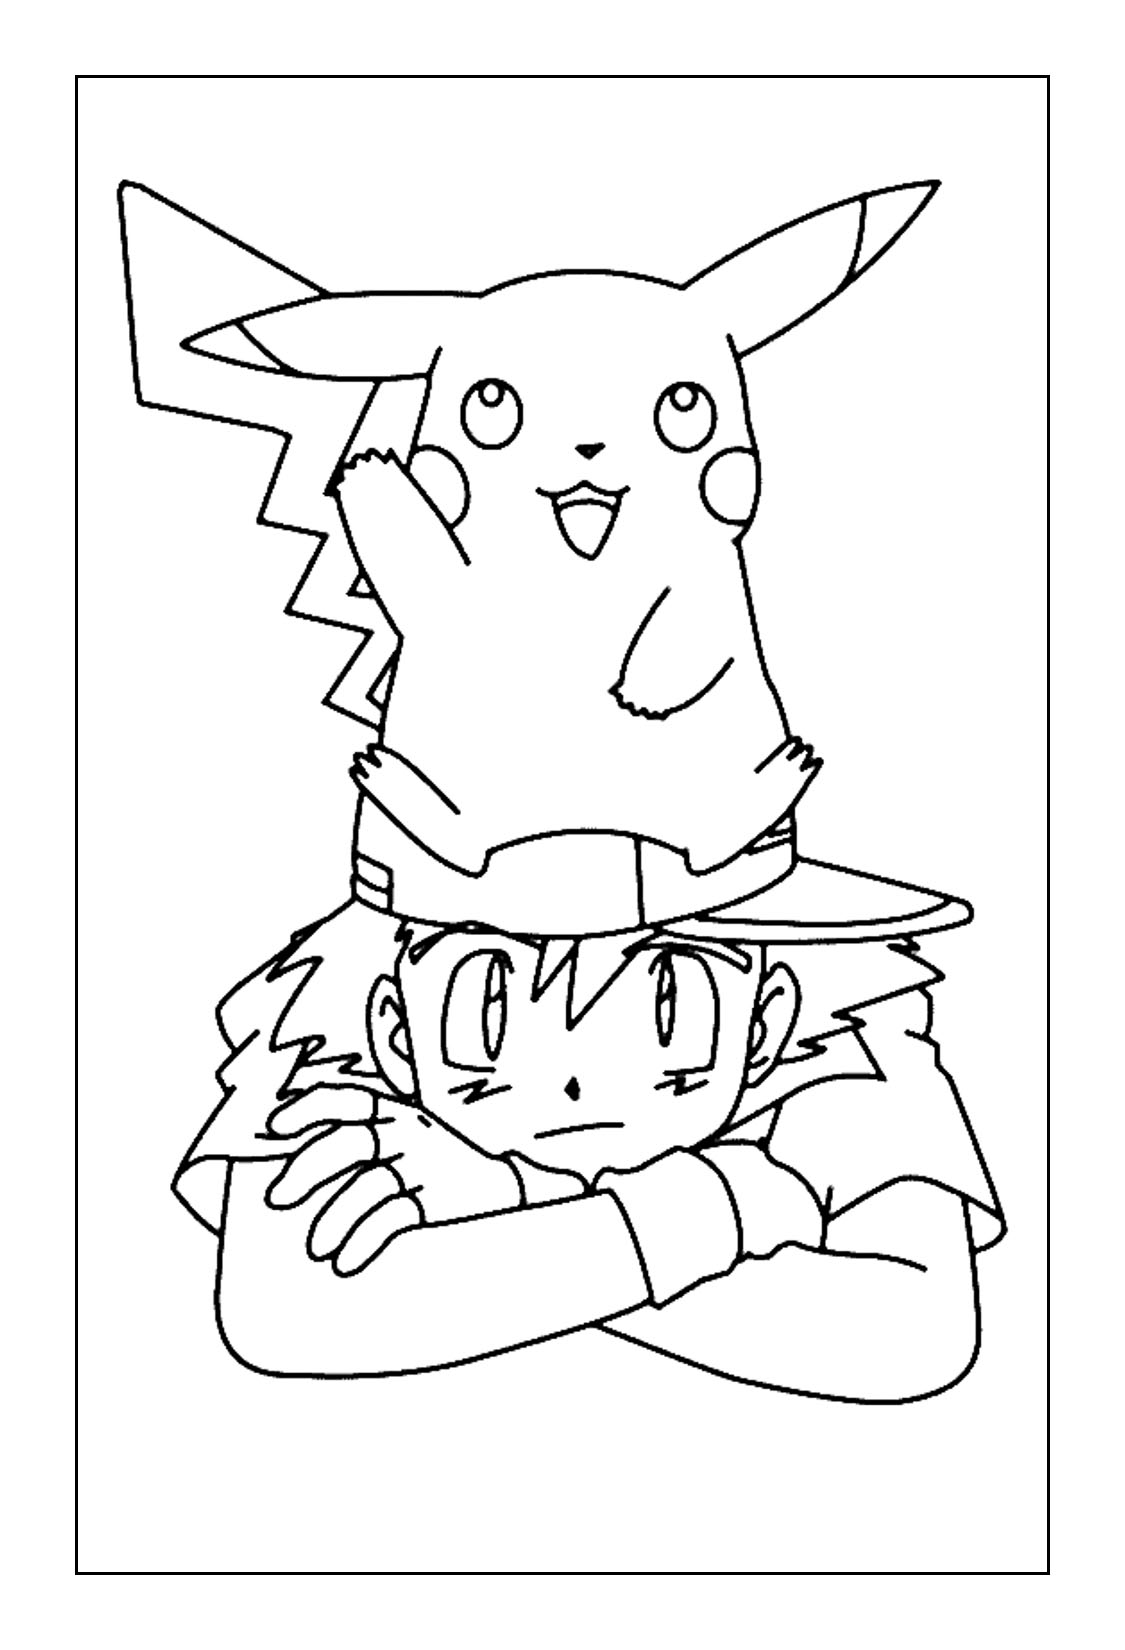 Detective Pikachu Coloring Pages Golfclub